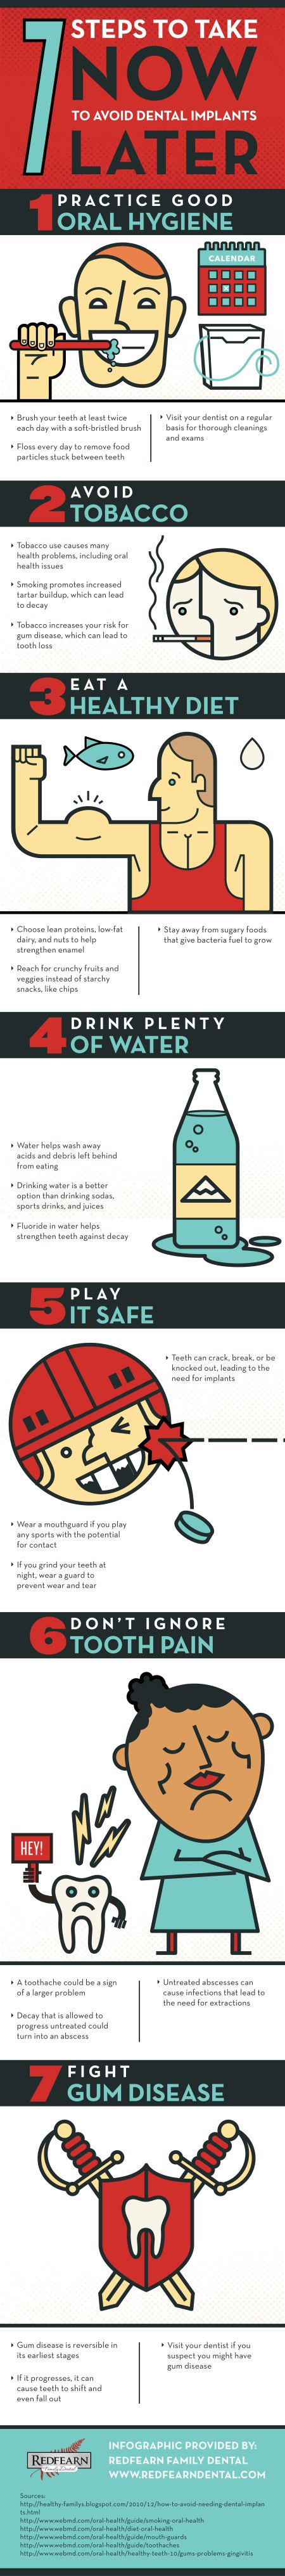 Got a toothache? It might be a sign of a much larger problem. Visit the dentist as soon as possible to avoid tooth decay that can lead to tooth loss. Get more advice by viewing this Highlands Ranch top implant dentist infographic.